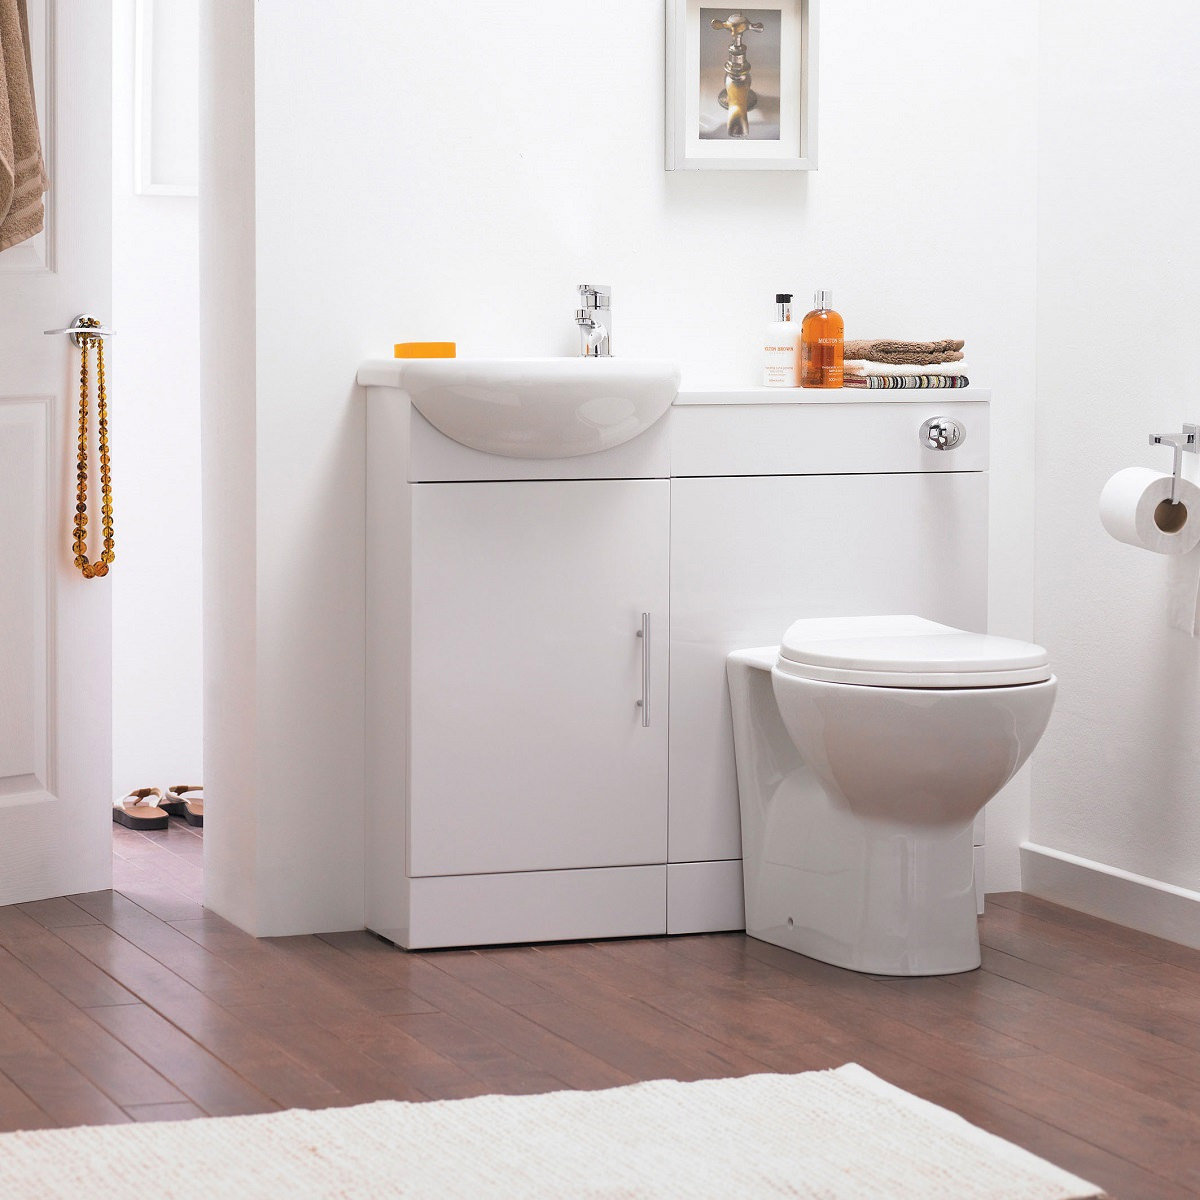 Premier Sienna Cloakroom Gloss White Furniture Pack Sie001